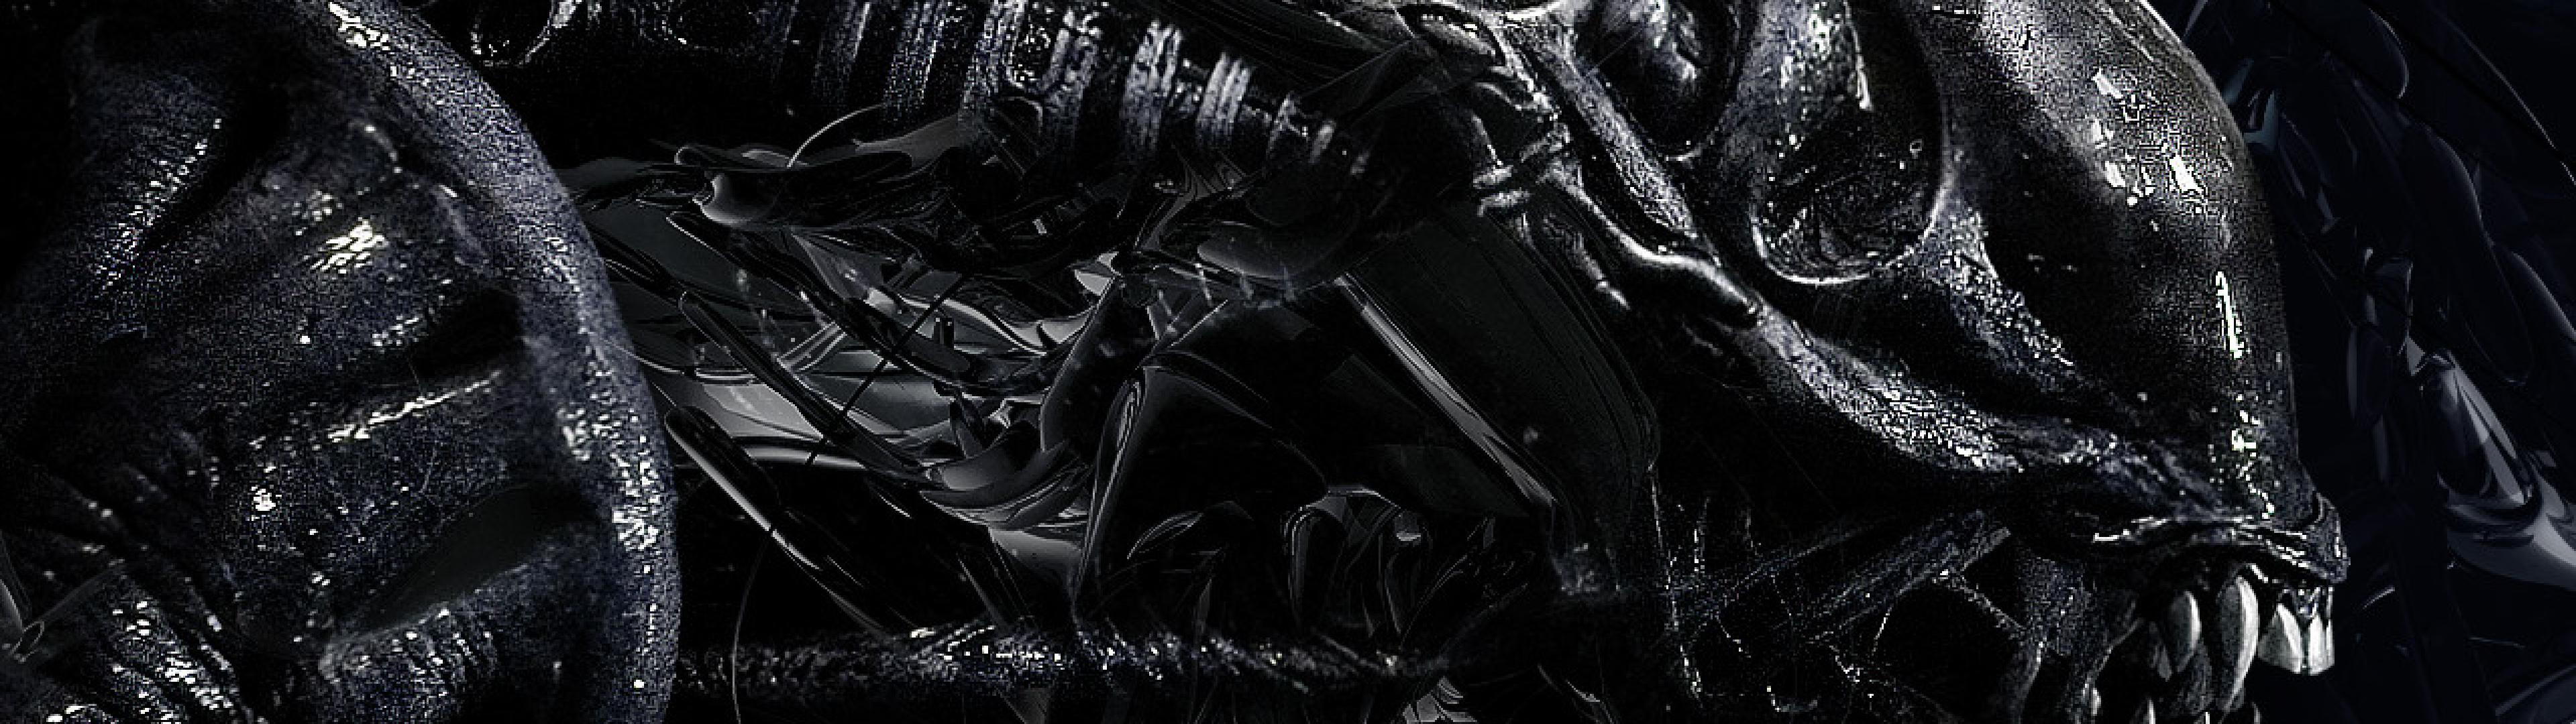 giger wallpaper hr hd - photo #32